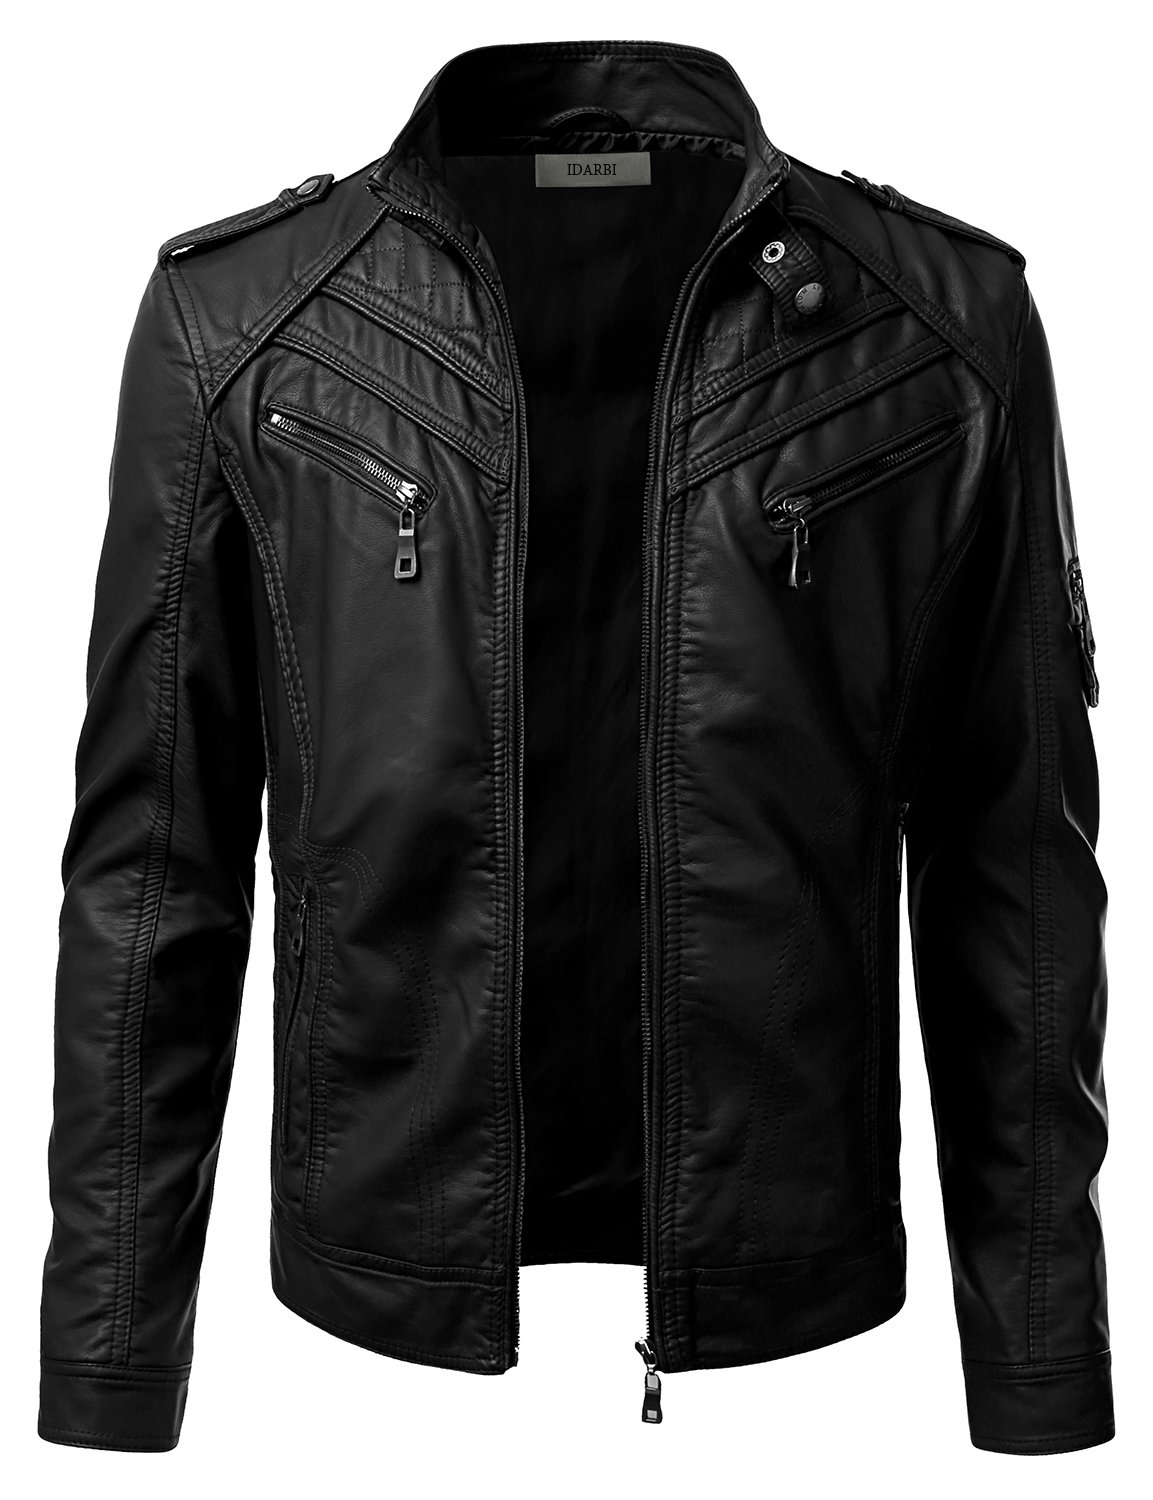 iDarbi Mens Prime PU Leather Motor Rider Jacket by IDARBI